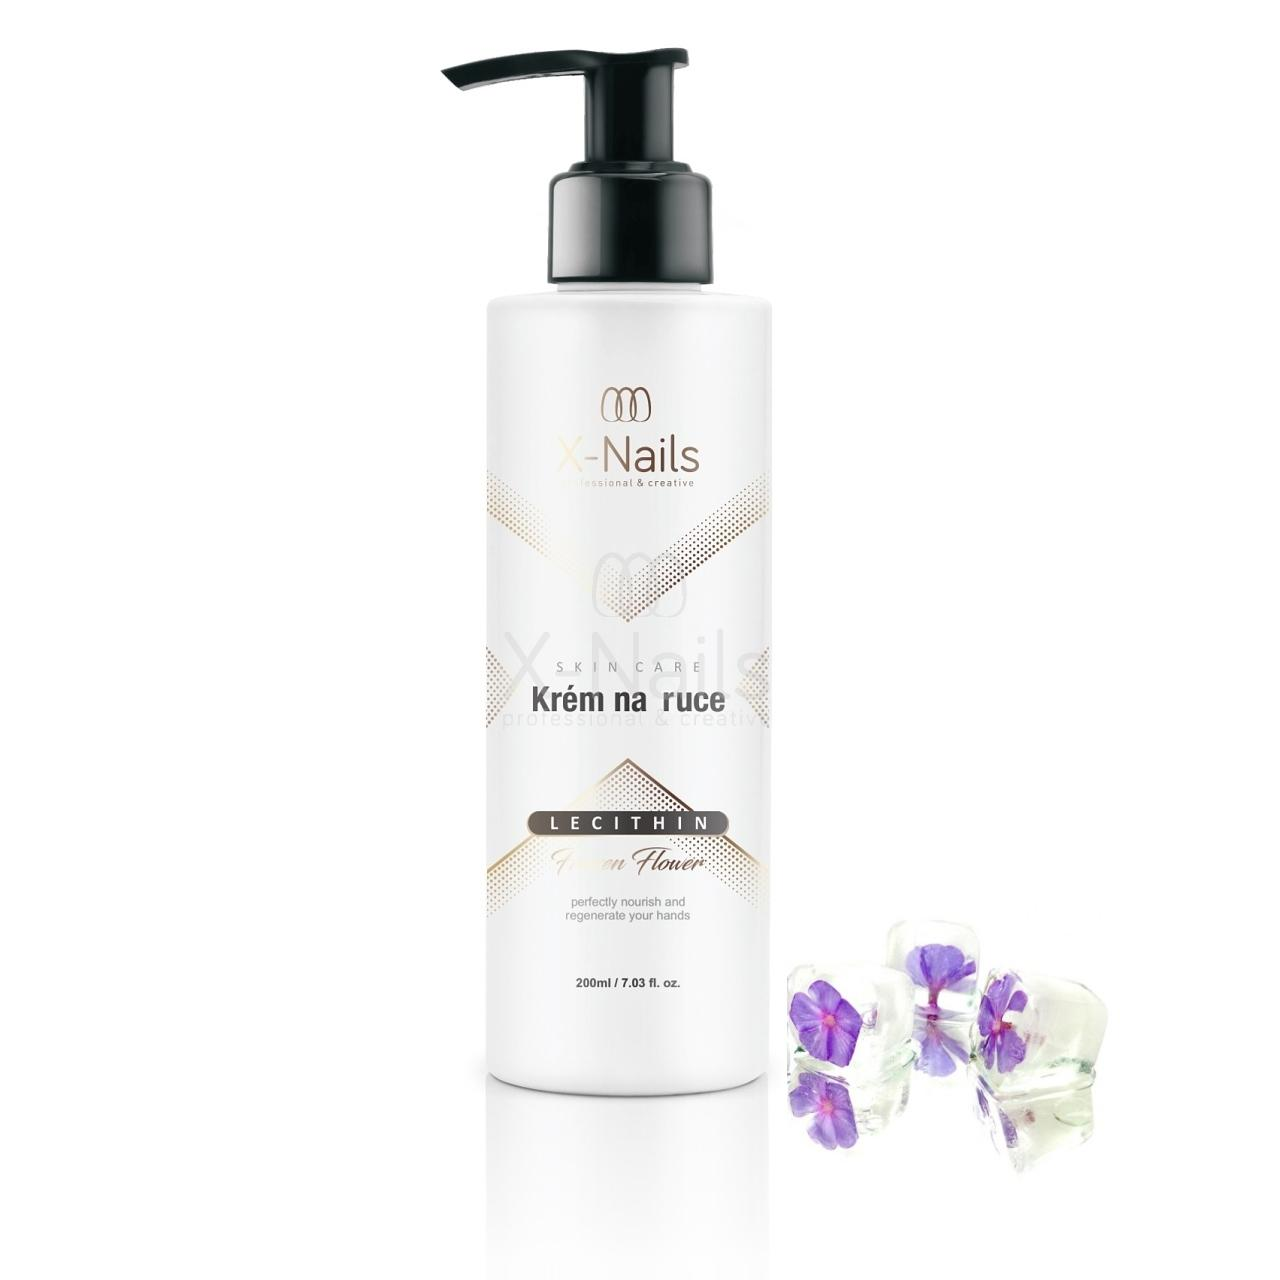 X-NAILS Krém na ruce  s lecithinem, 200 ml - Frozen Flower